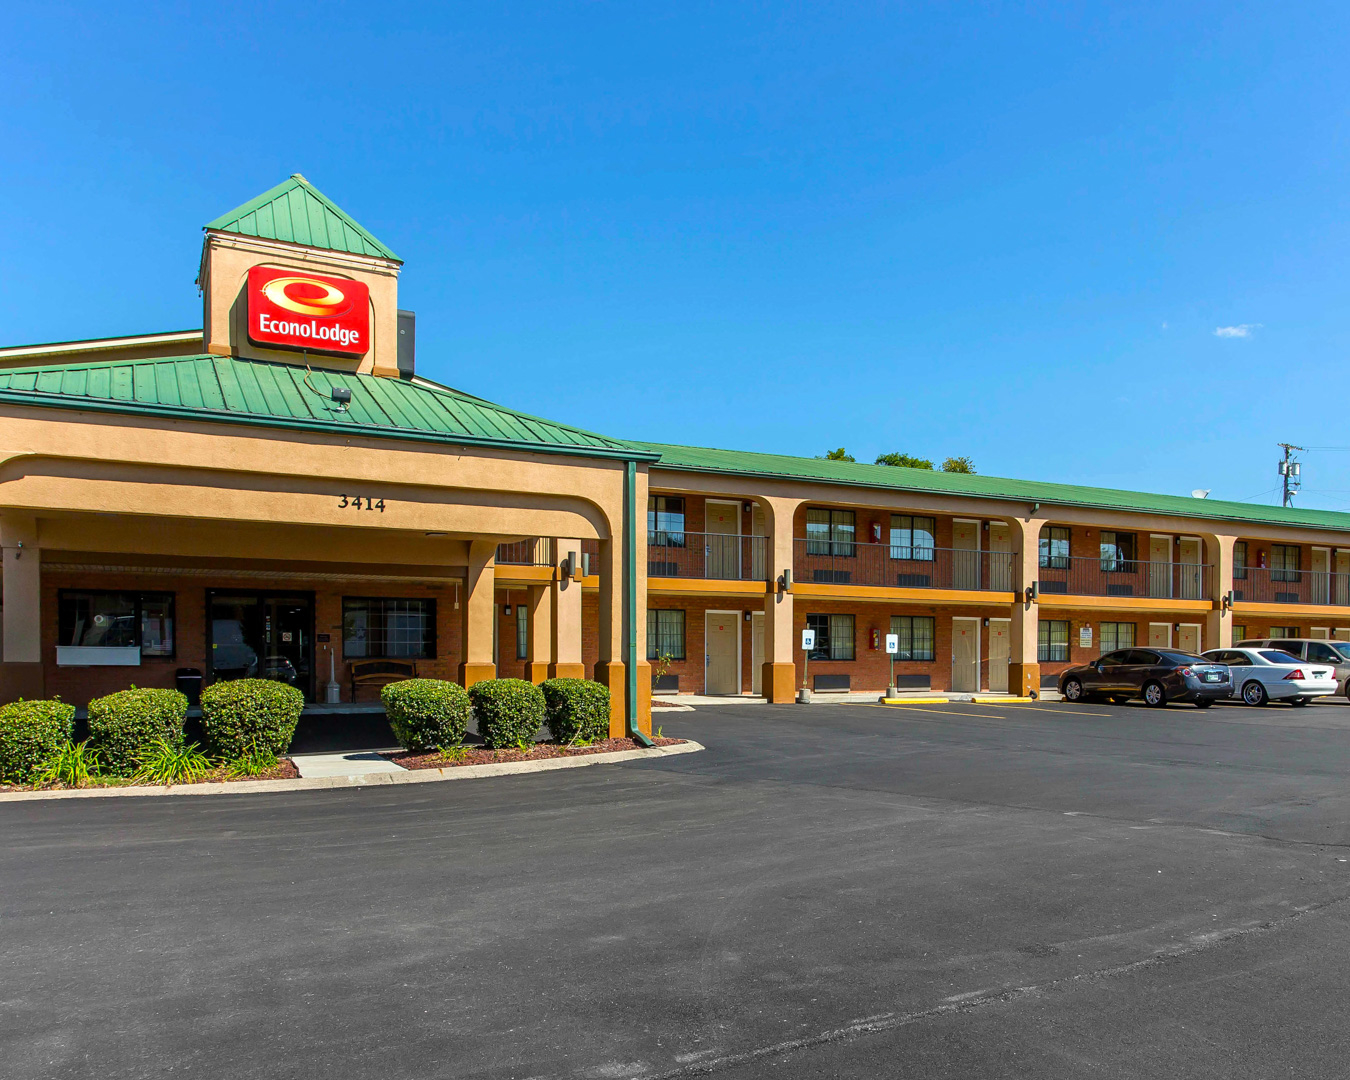 Econo Lodge  Nashville Tennessee  Tn